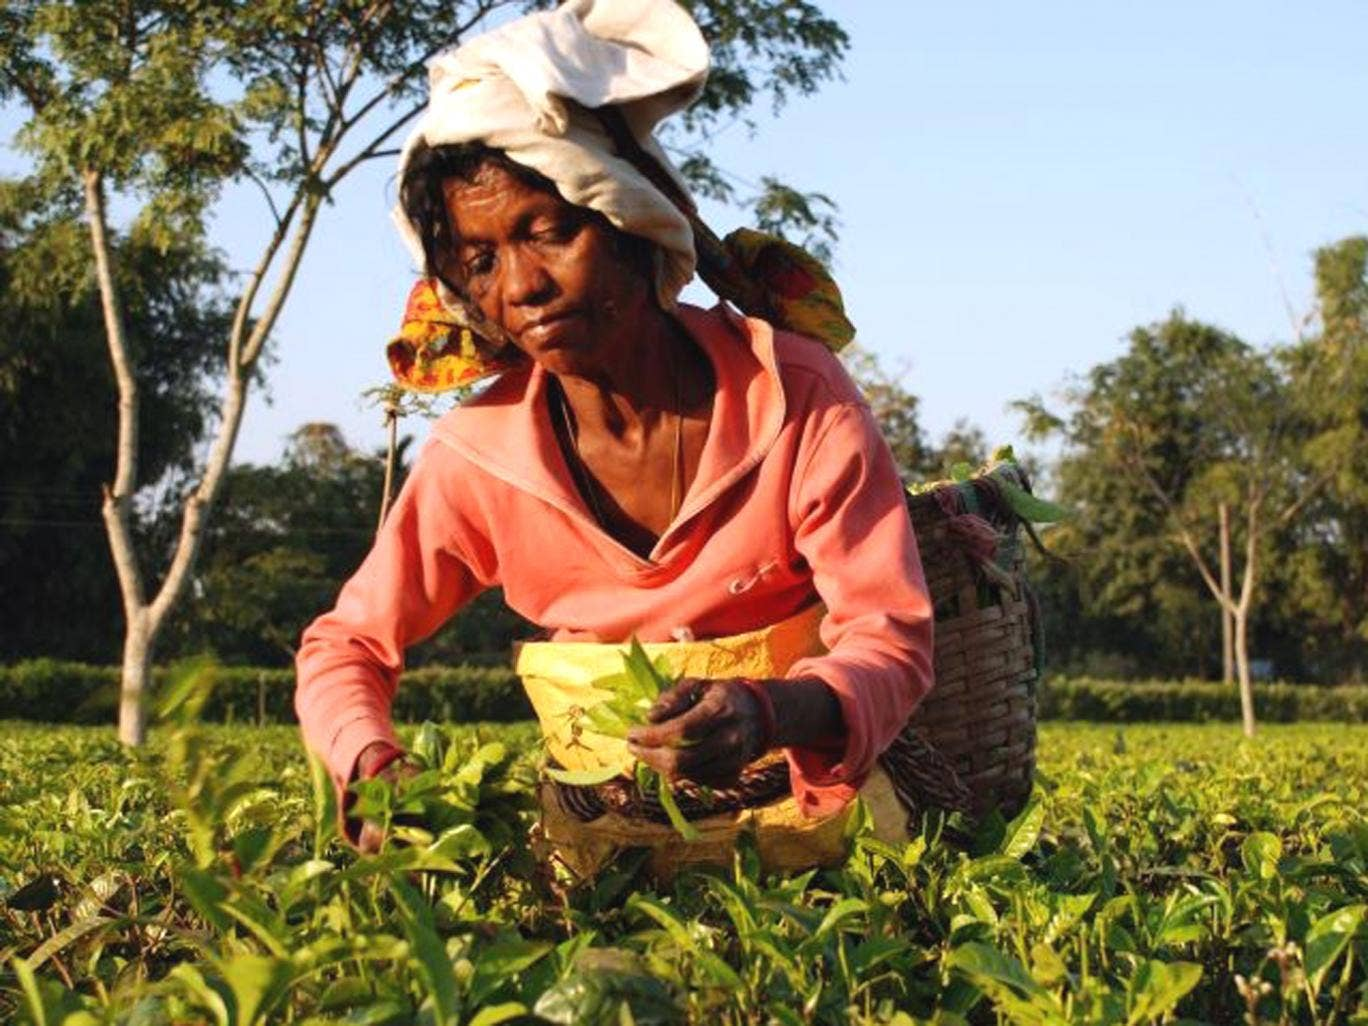 More than half of India's tea production comes from some 800 tea estates across Assam